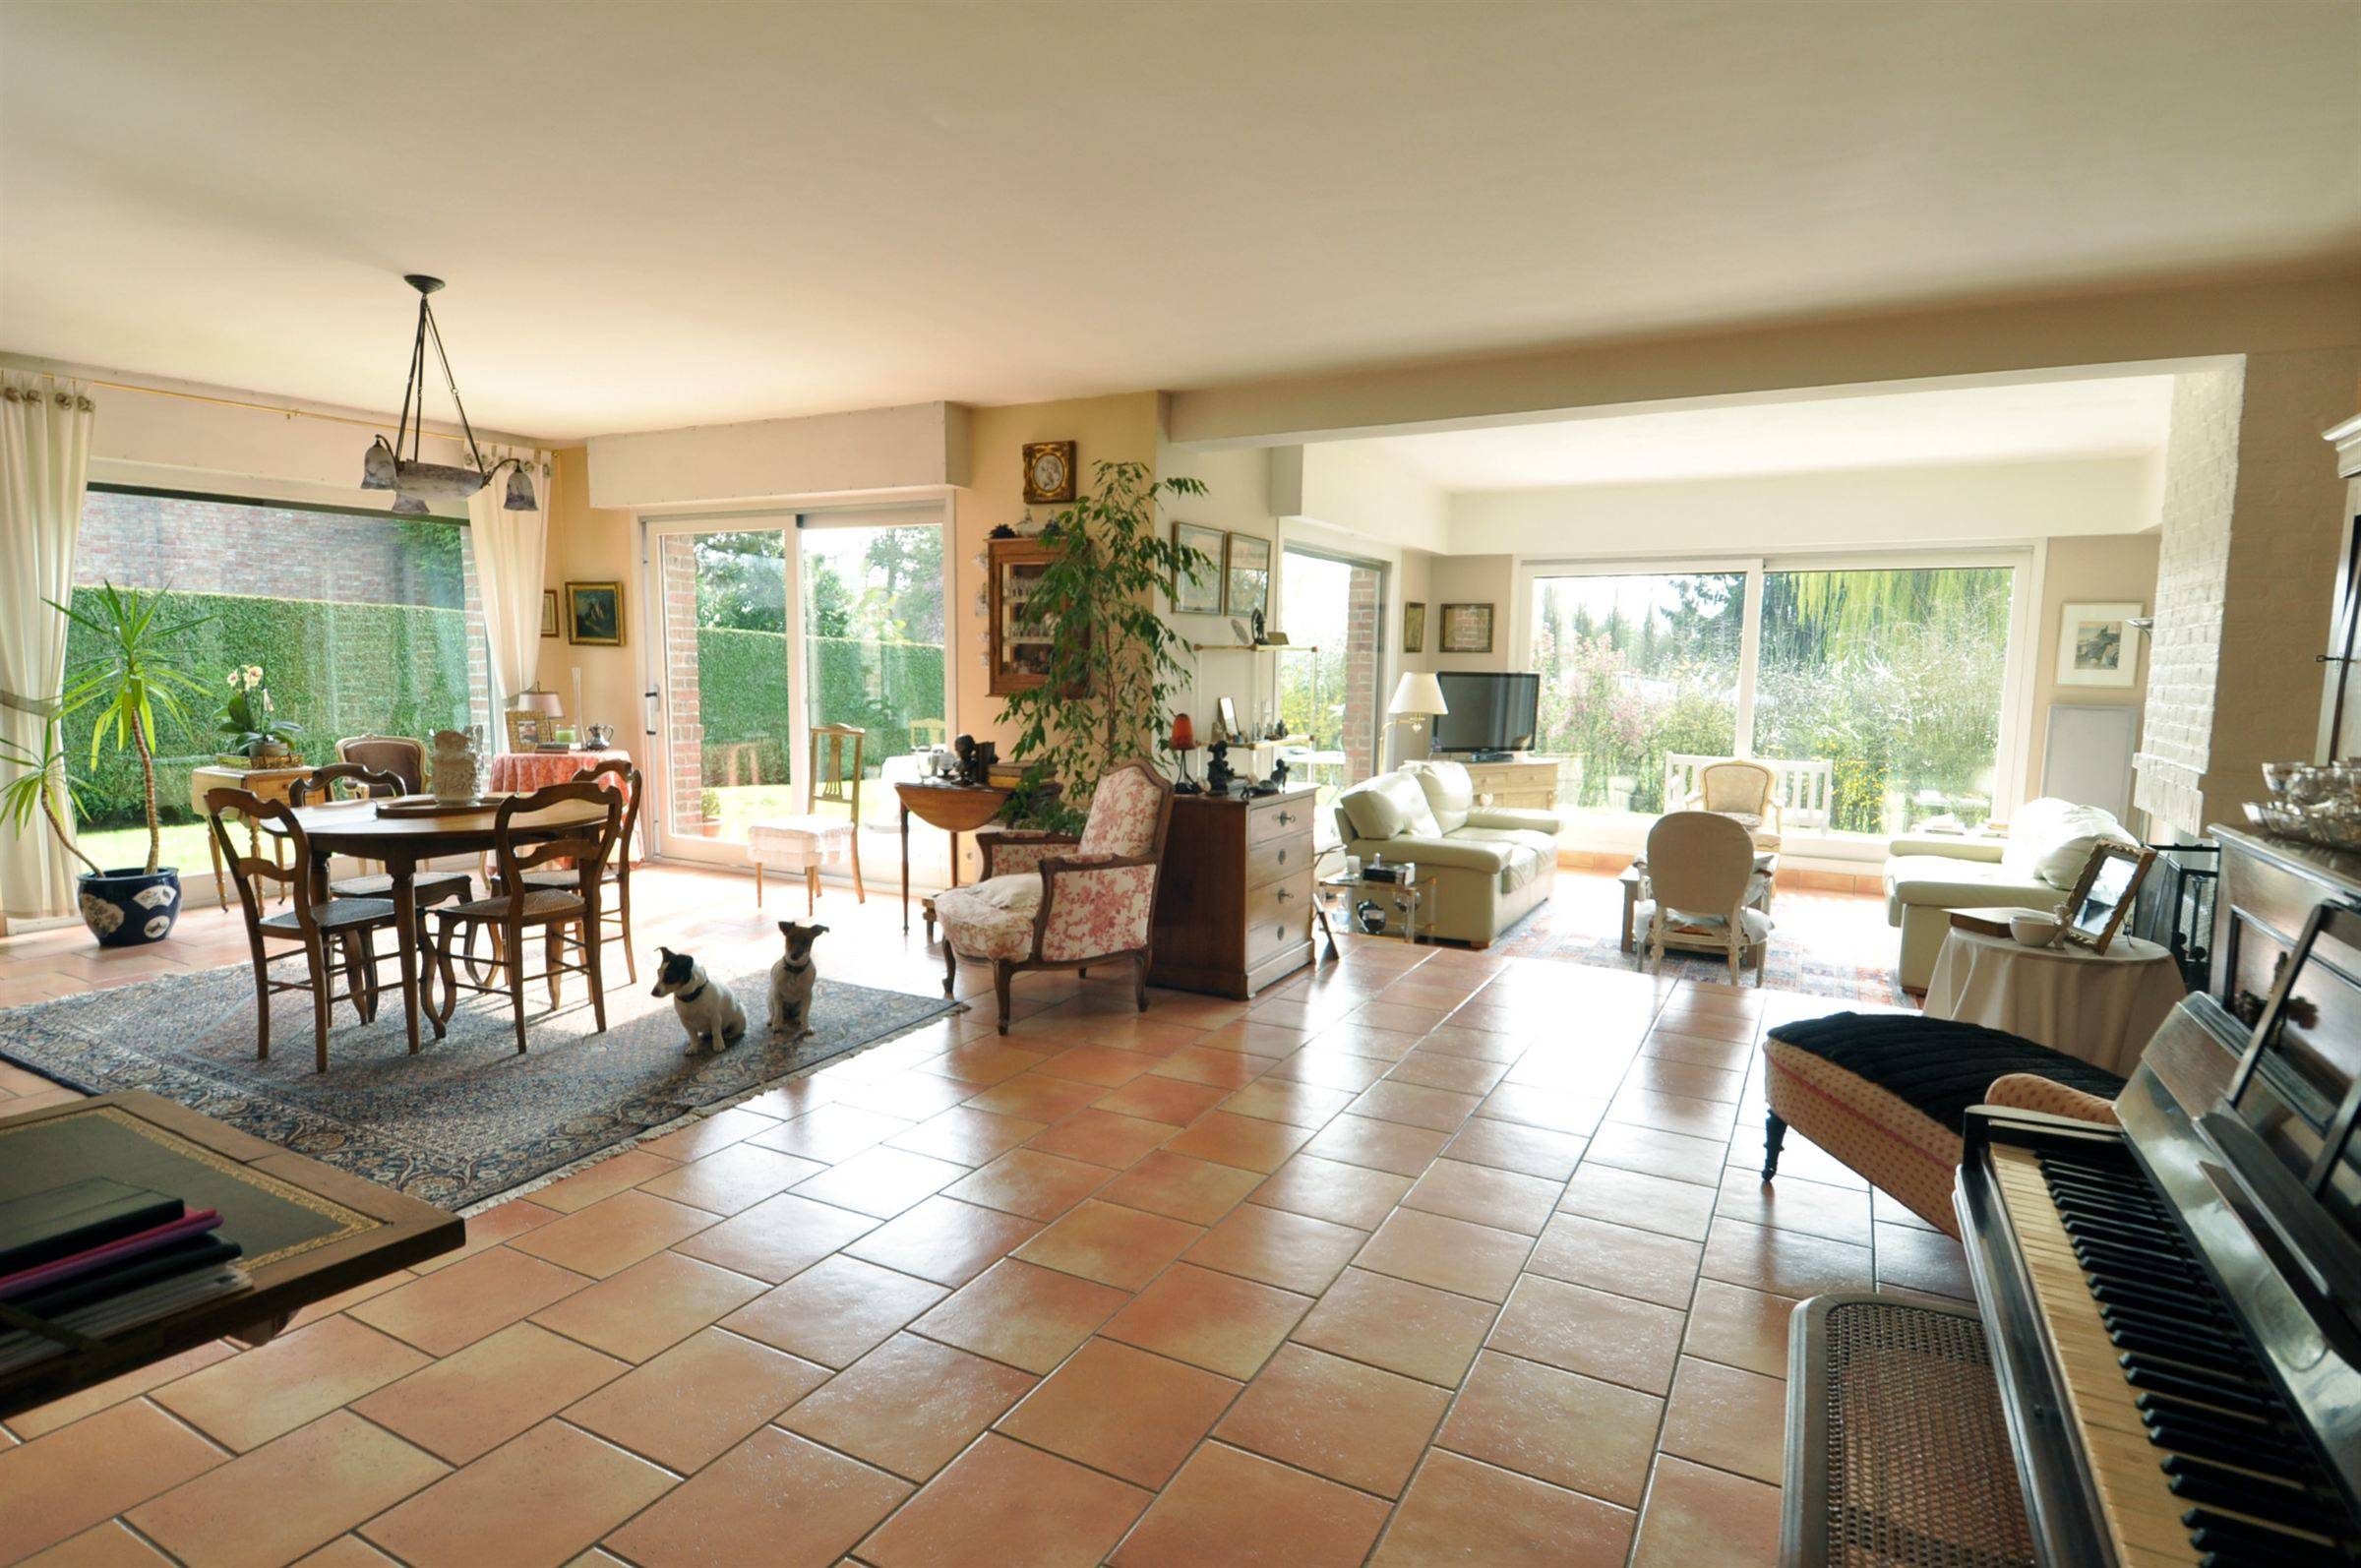 Property For Sale at ESCOBECQUES, Charming Family villa of 265 m², 5 bedrooms